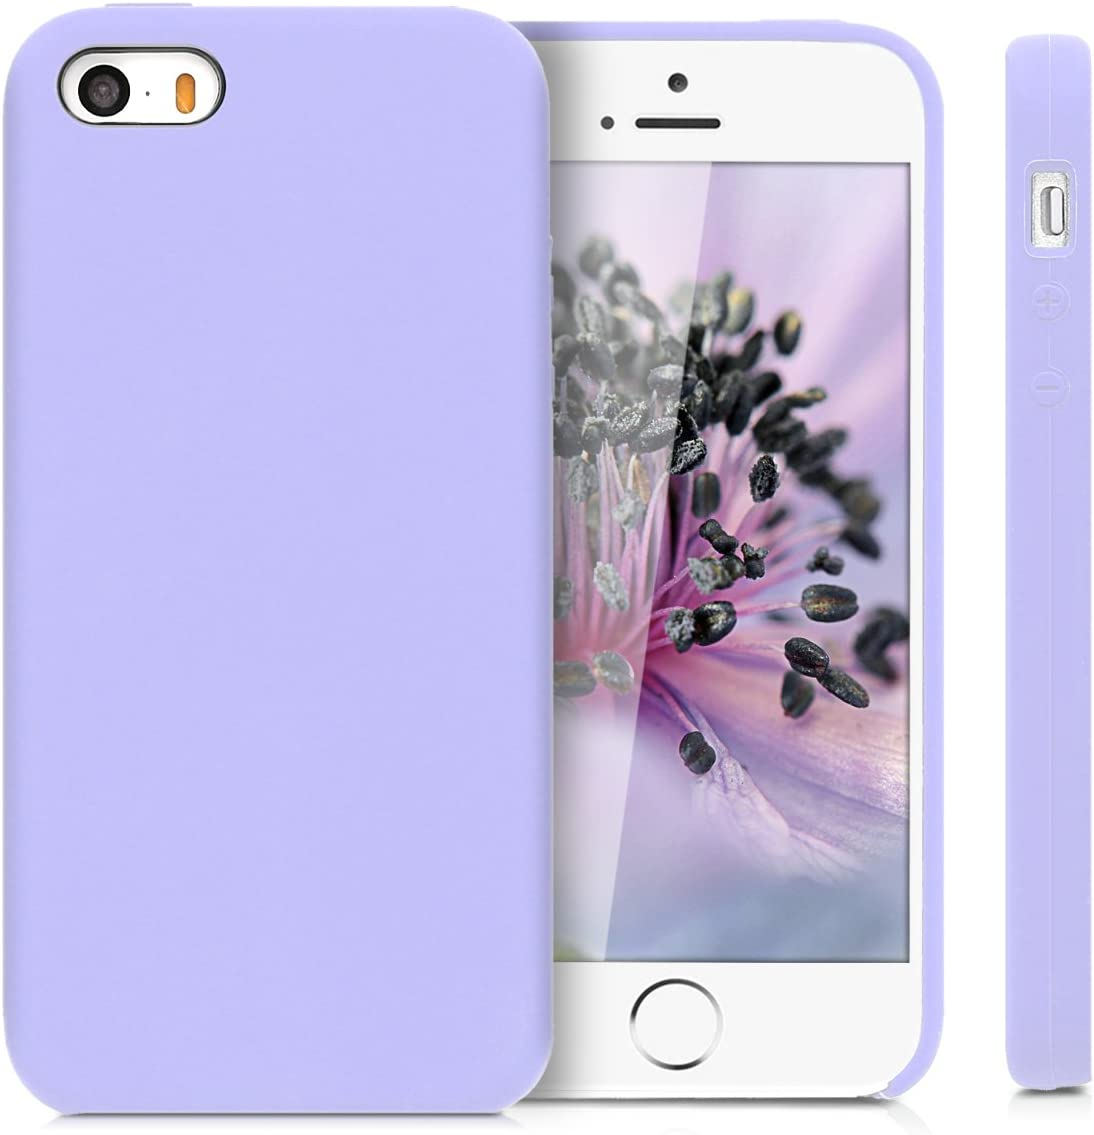 kwmobile TPU Silicone Case Compatible with Apple iPhone SE (1.Gen 2016) / 5 / 5S - Case Slim Phone Cover with Soft Finish - Lavender